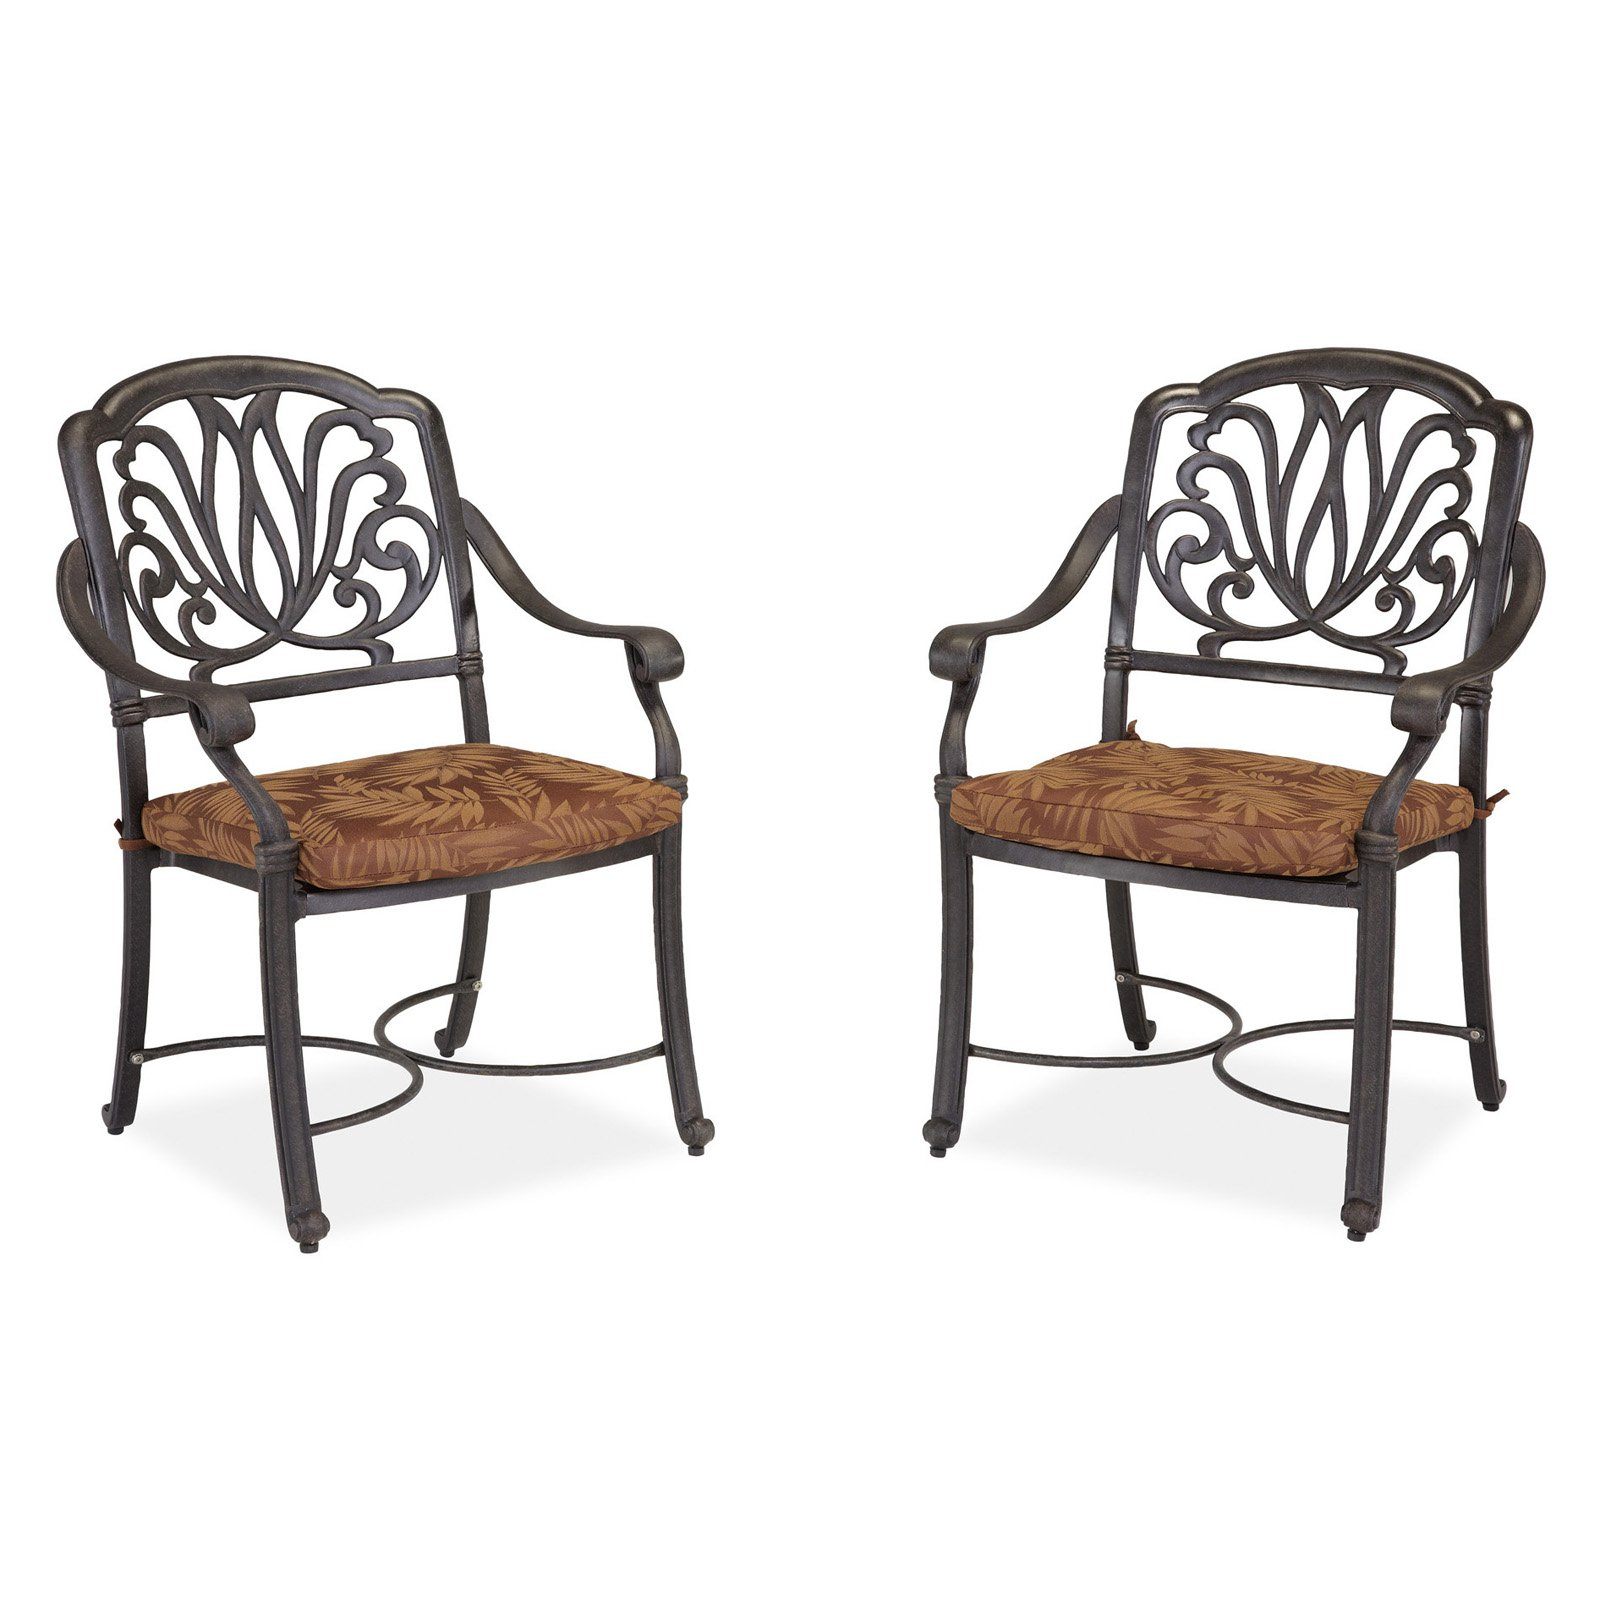 Home Styles Floral Blossom Outdoor Arm Chairs with Cushion, Set of 2, Charcoal